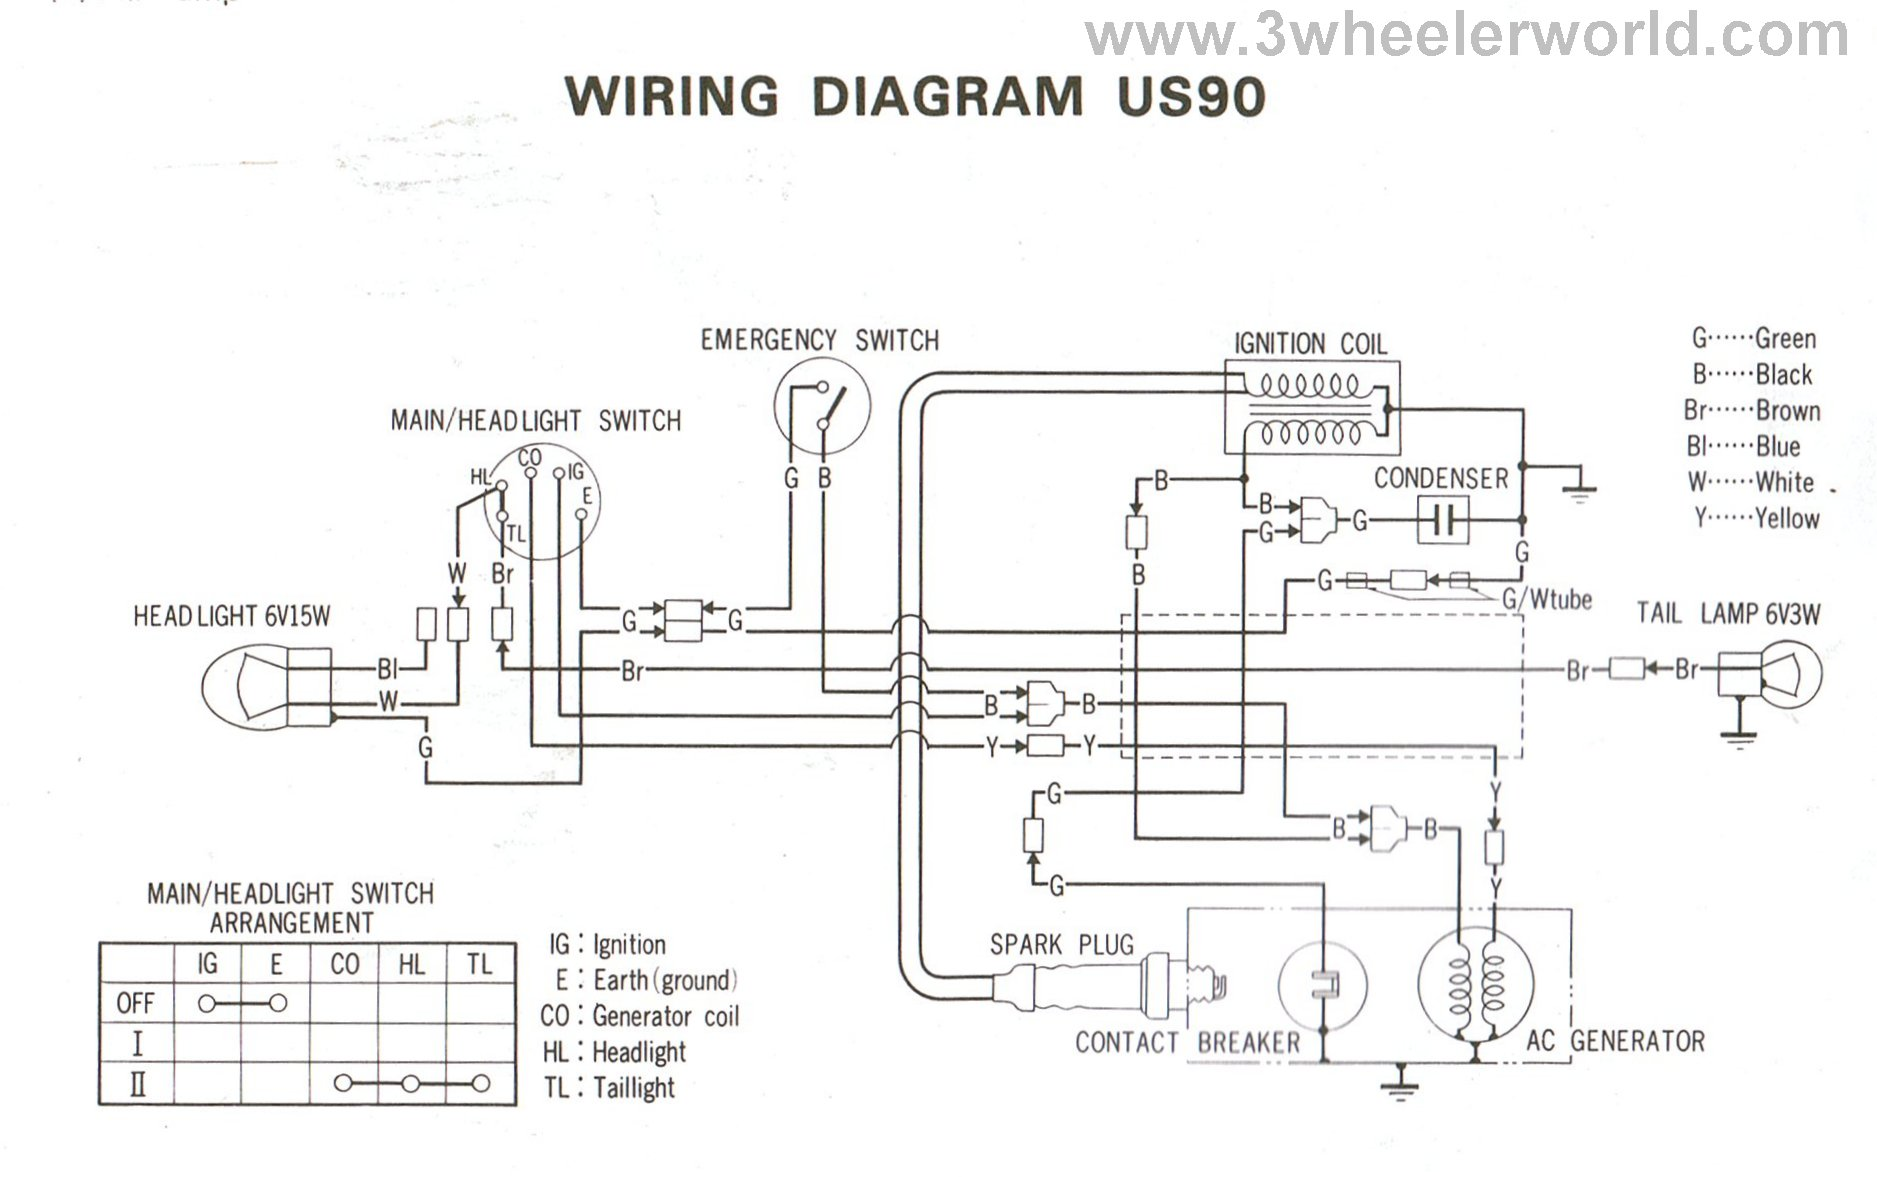 1973 Kawasaki Wiring Diagram Library Yamaha Dt 175 For Us90 1970 Thru Atc90 1974 1978